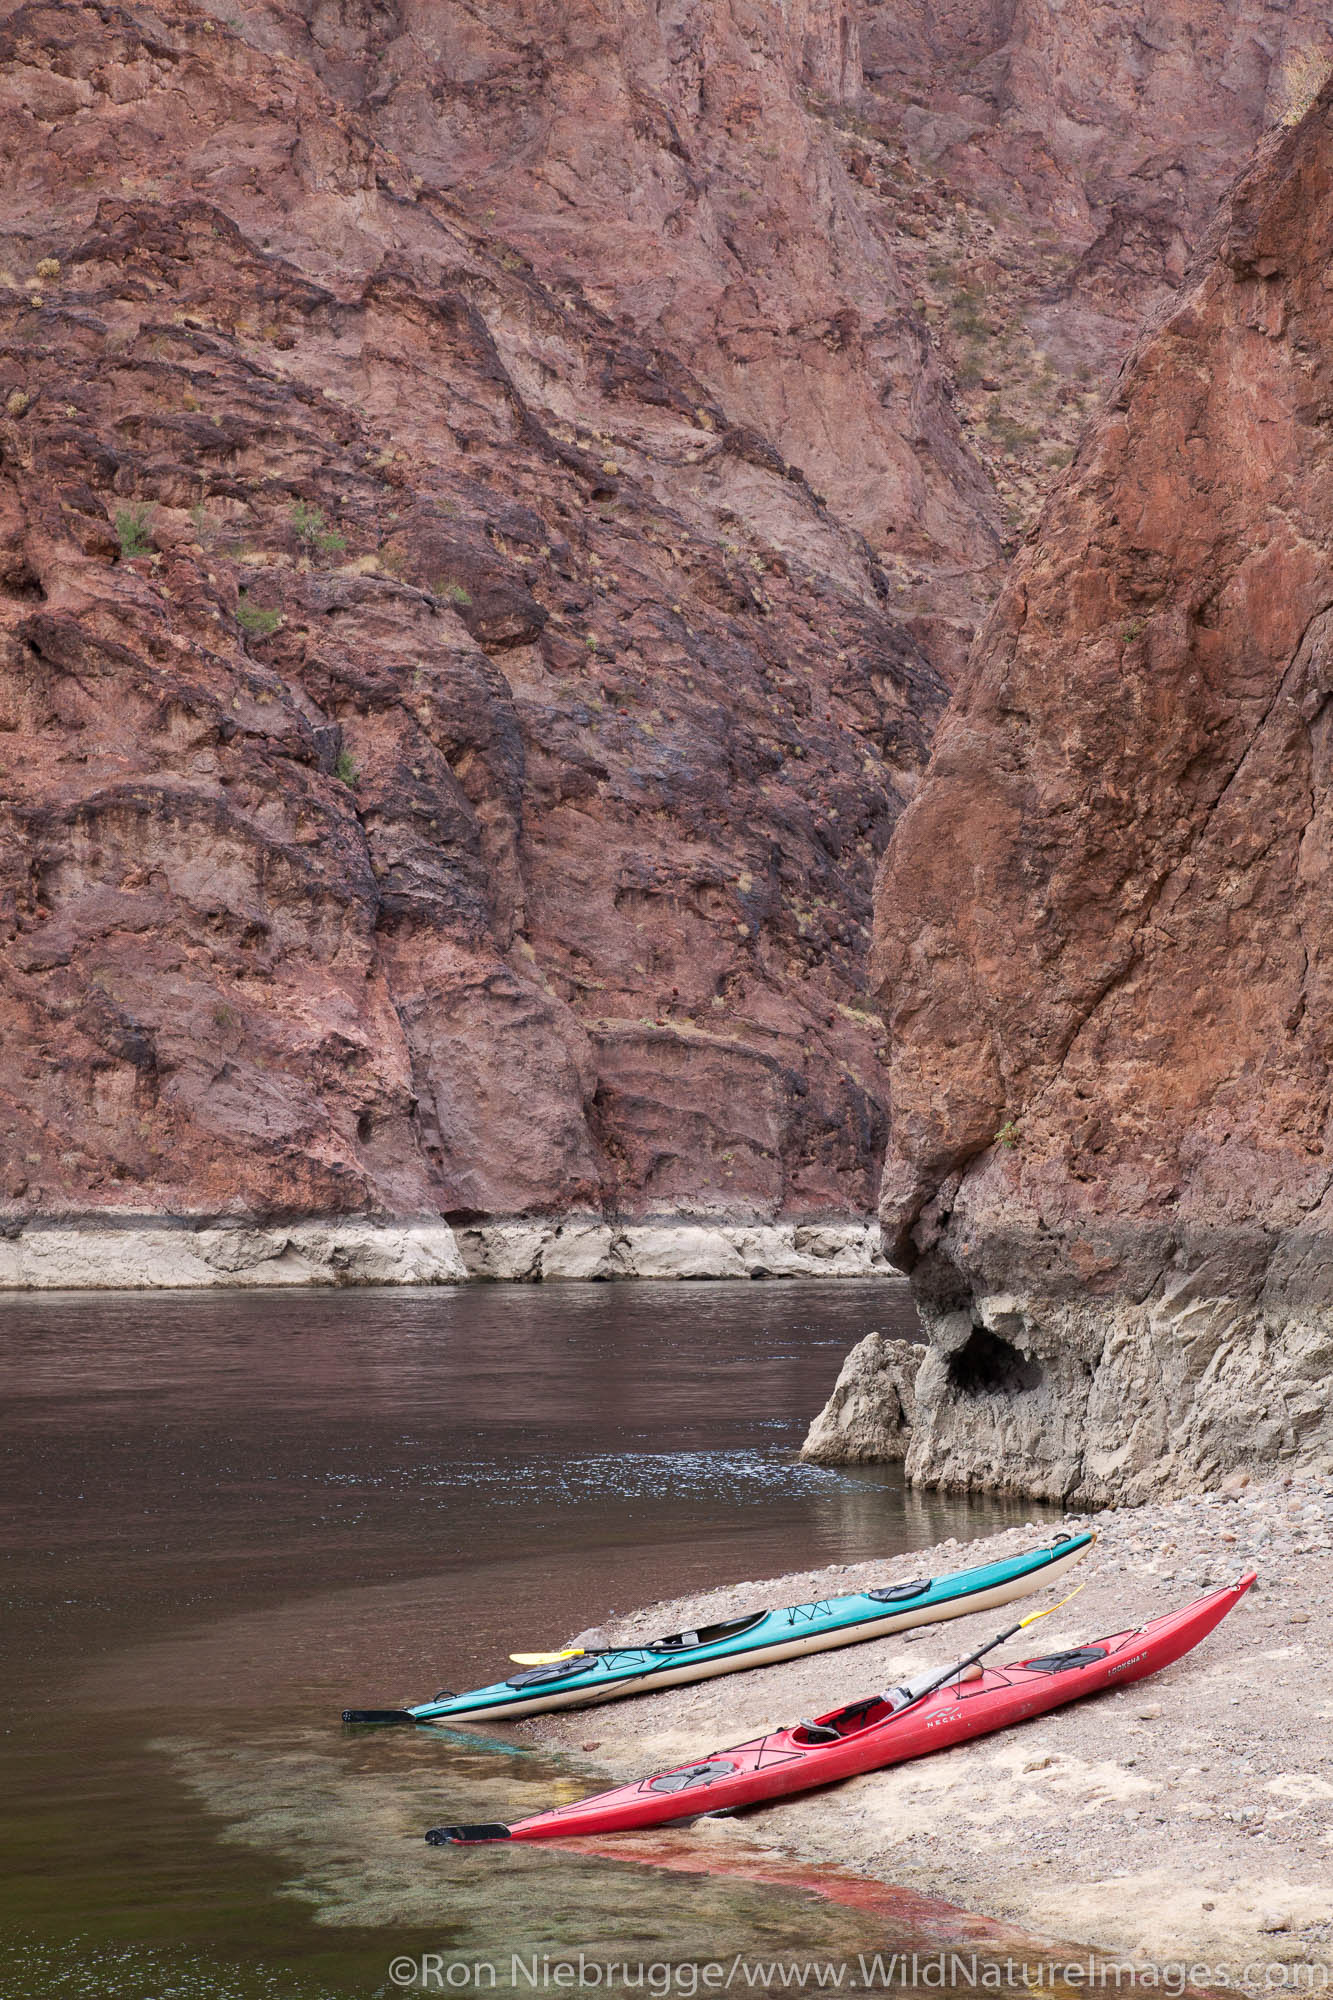 Kayaking in Black Canyon area of the Colorado River, Mojave Desert.